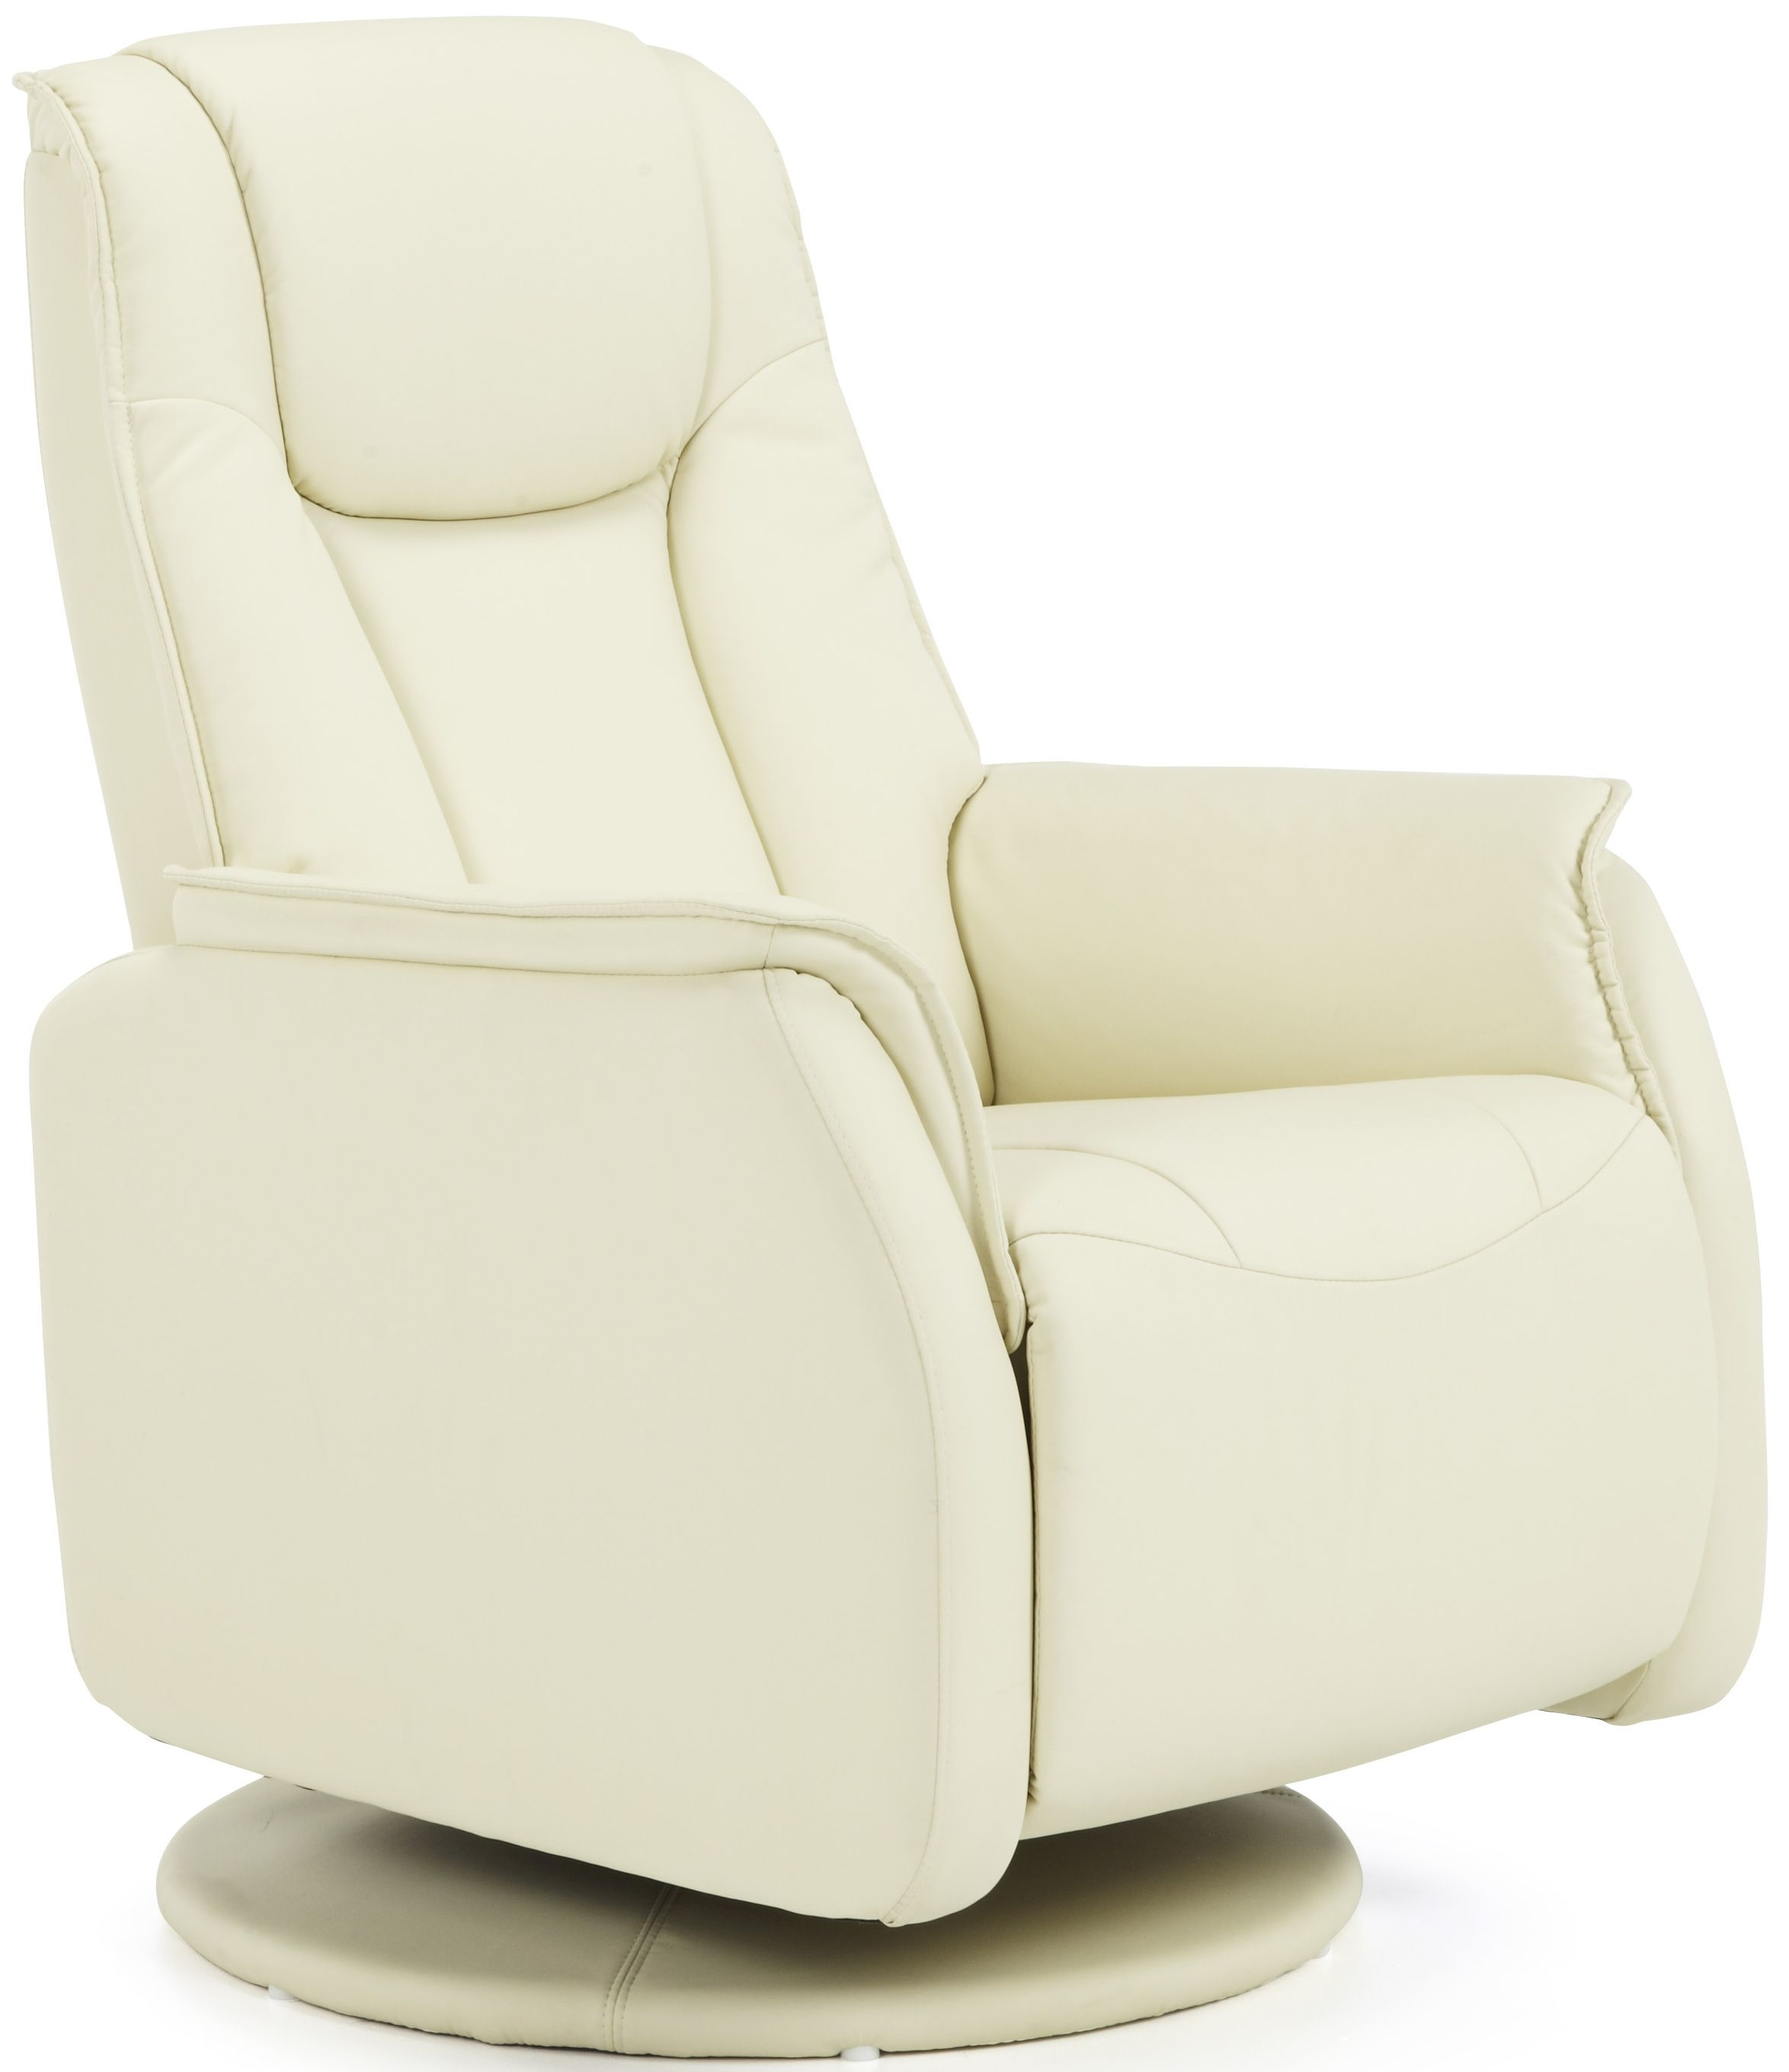 Serene Tonsberg Cream Faux Leather Recliner Chair